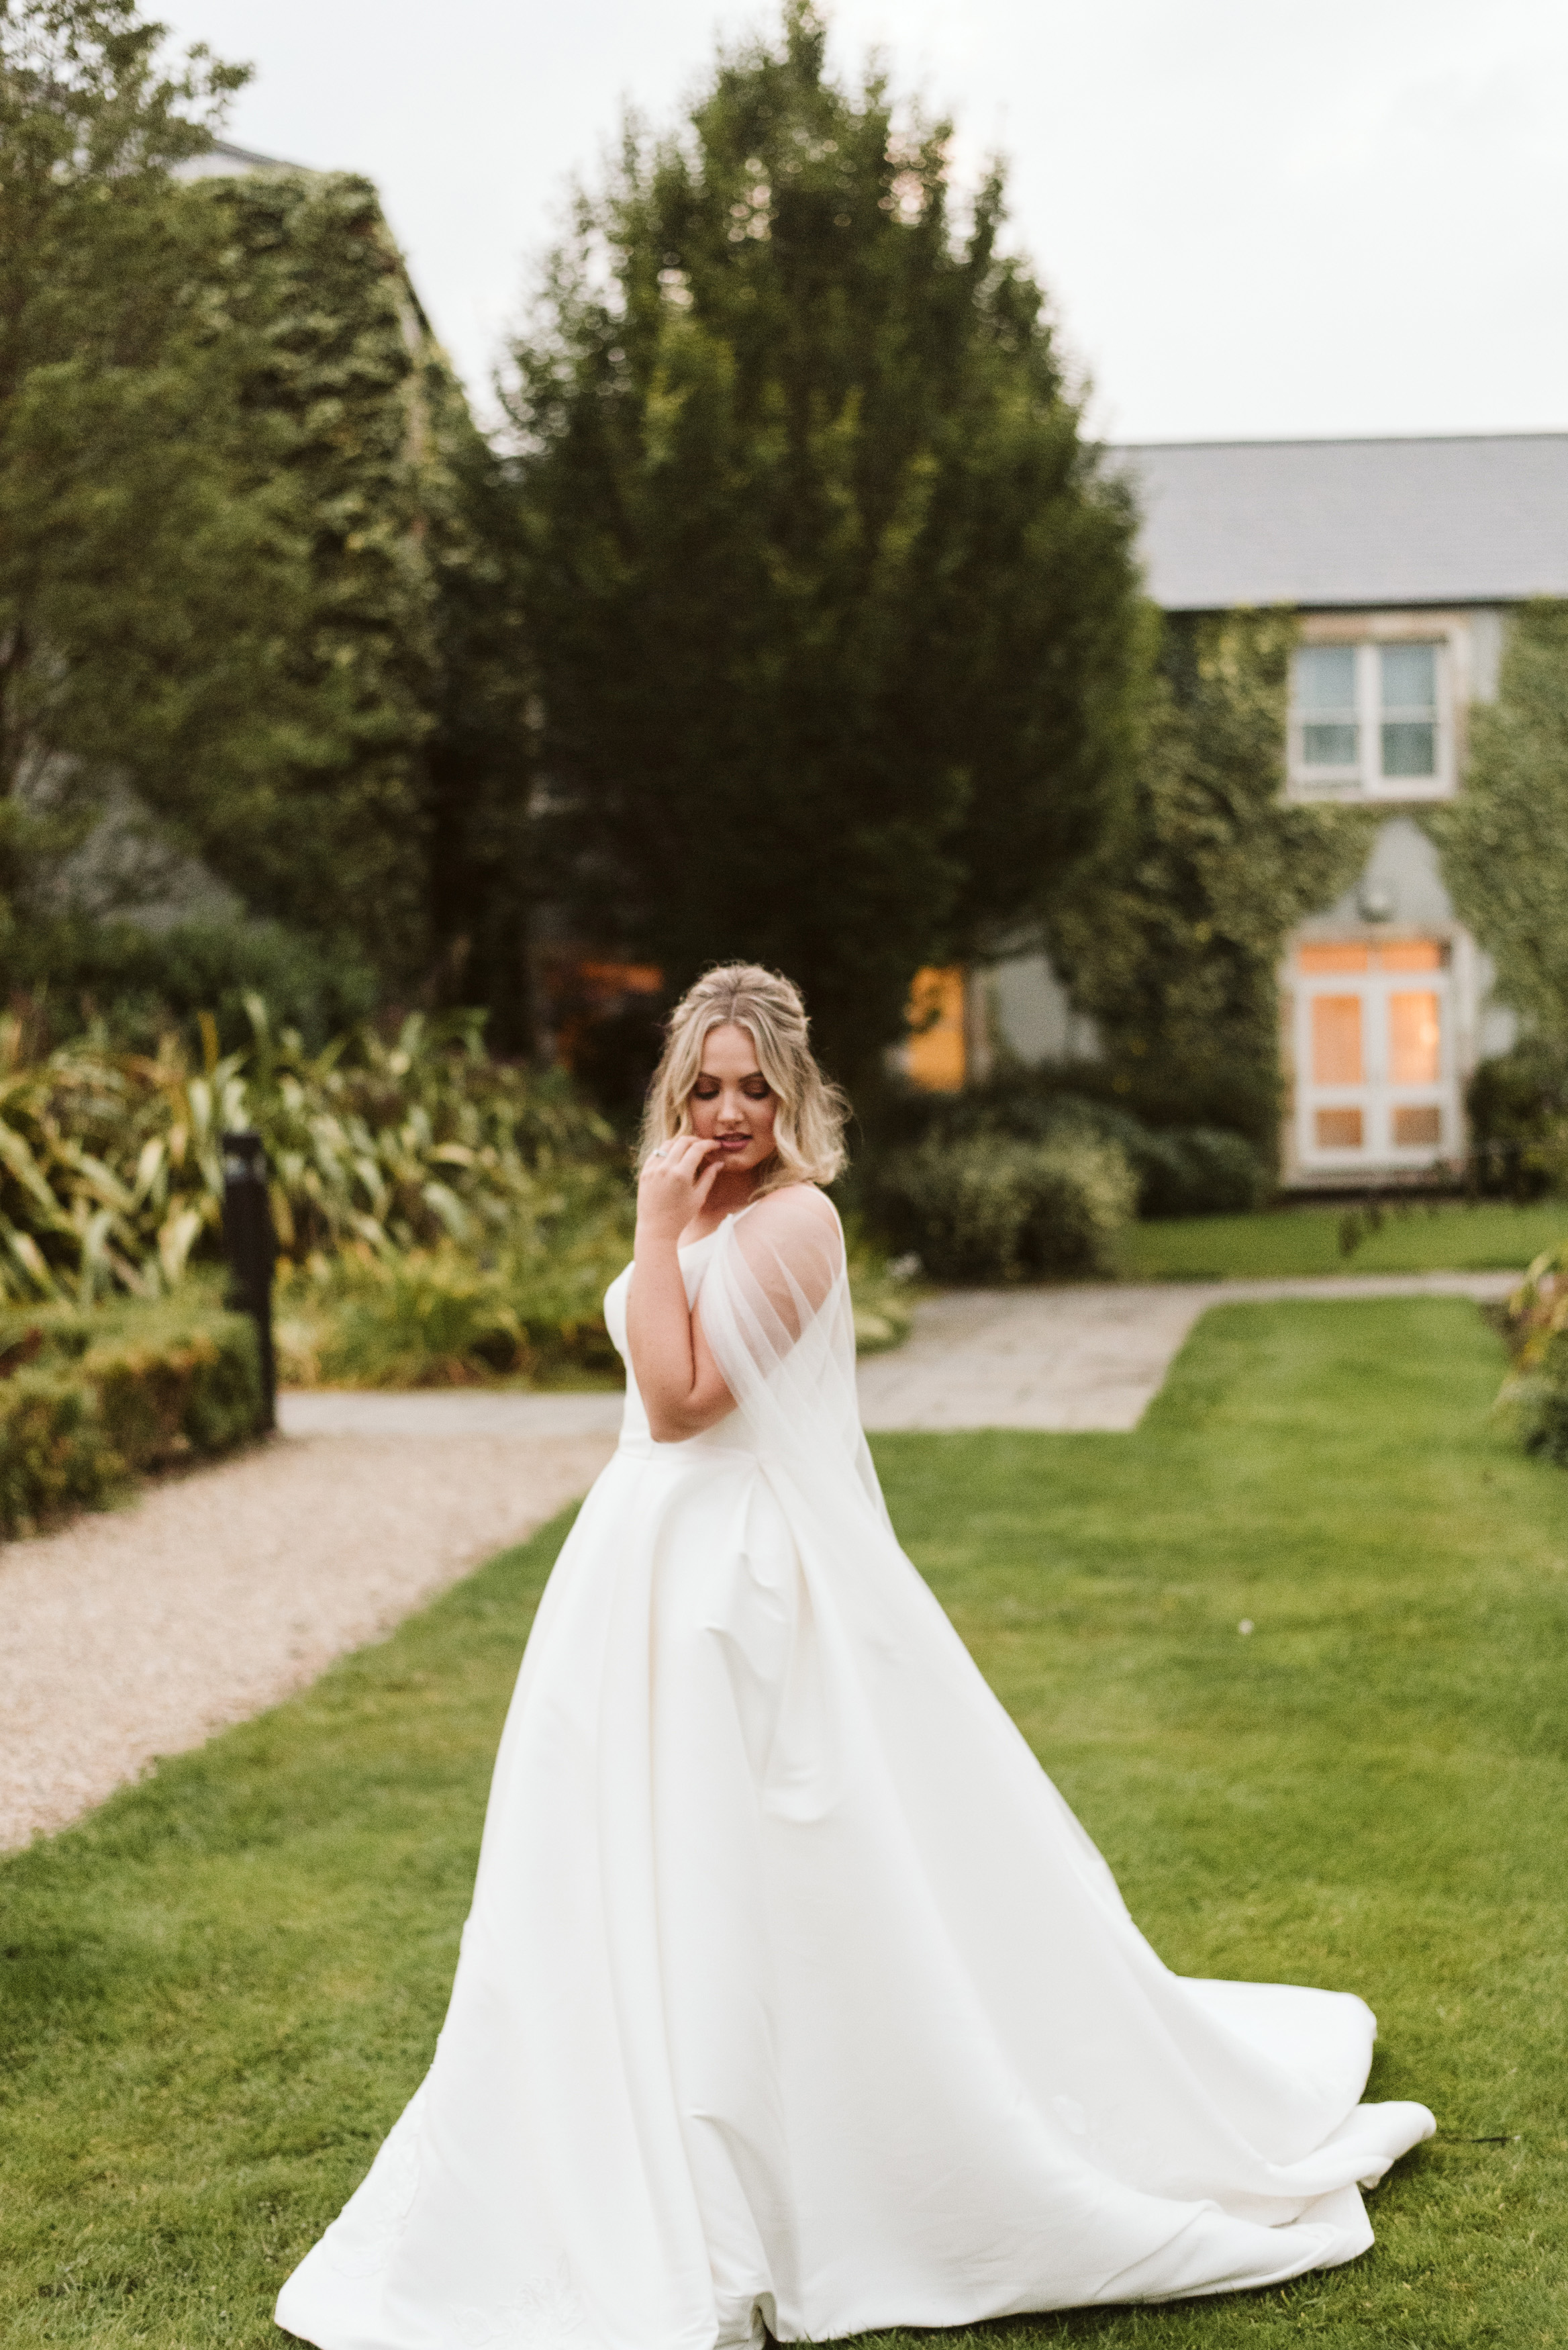 Bride in a mikado ballgown wedding dress with straps and a tulle cape walks through the garden at Lough Eske Castle in Ireland